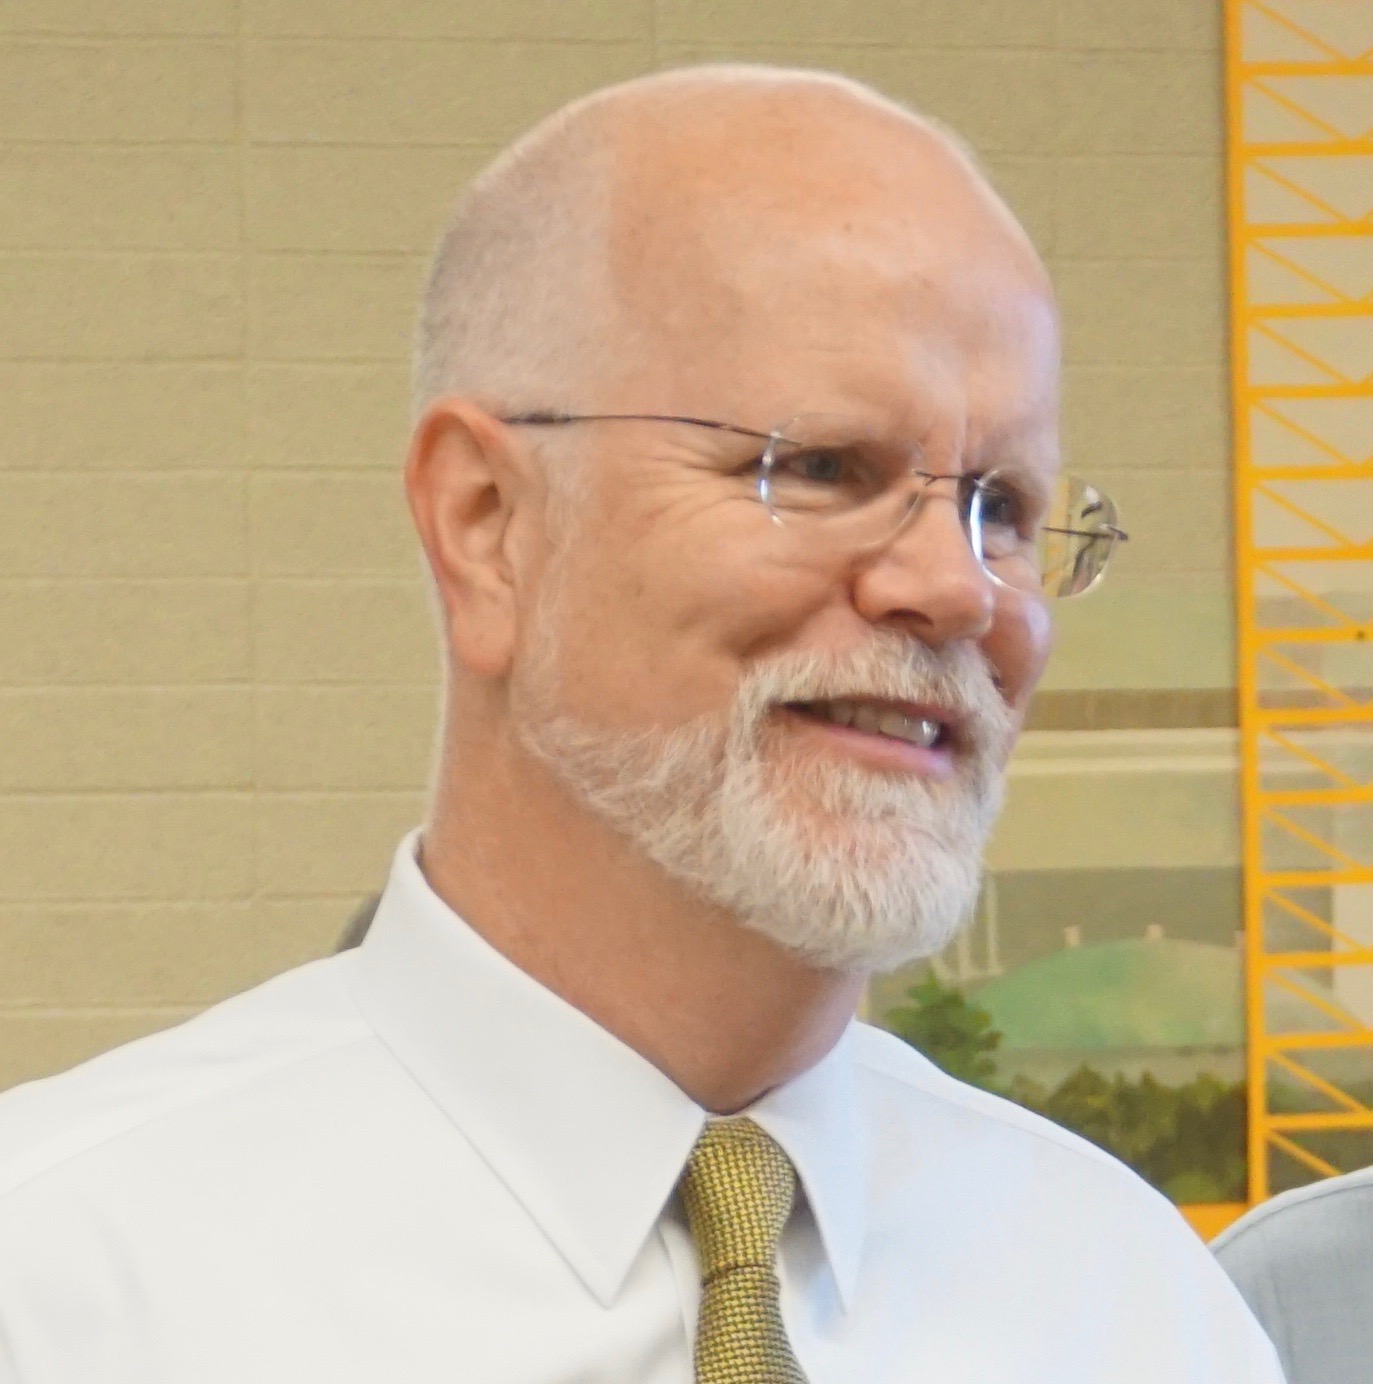 Lembo challenges charitable deductions for anti-LGBT group